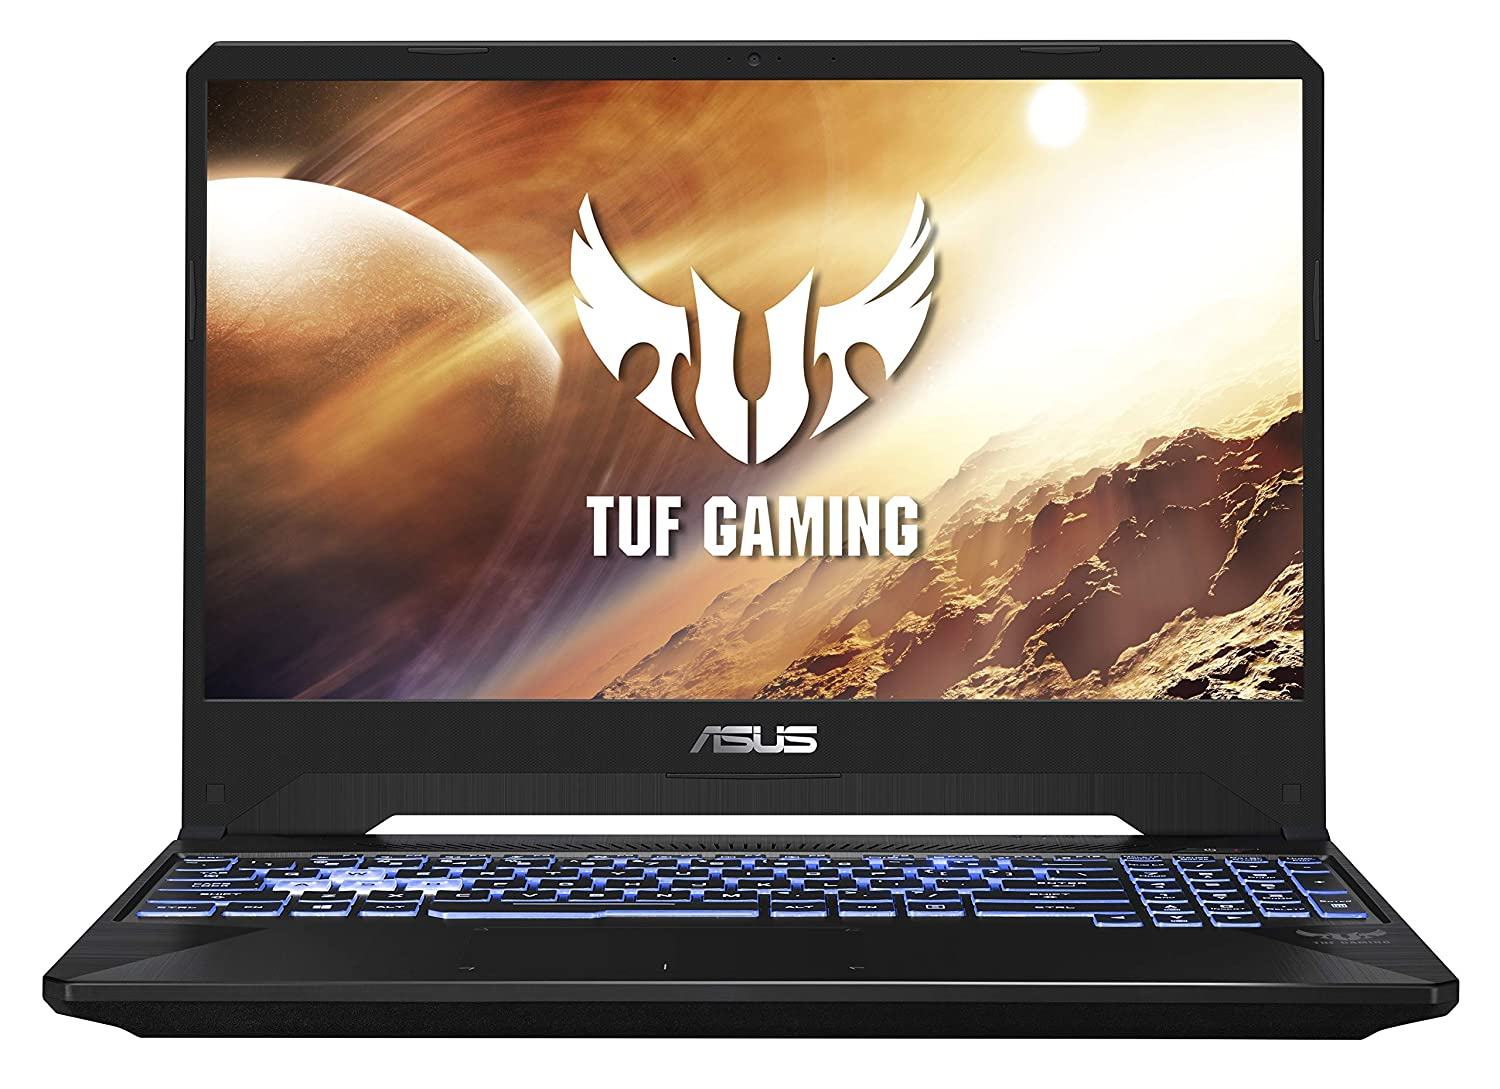 ASUS TUF Gaming laptop with 16 GB RAM